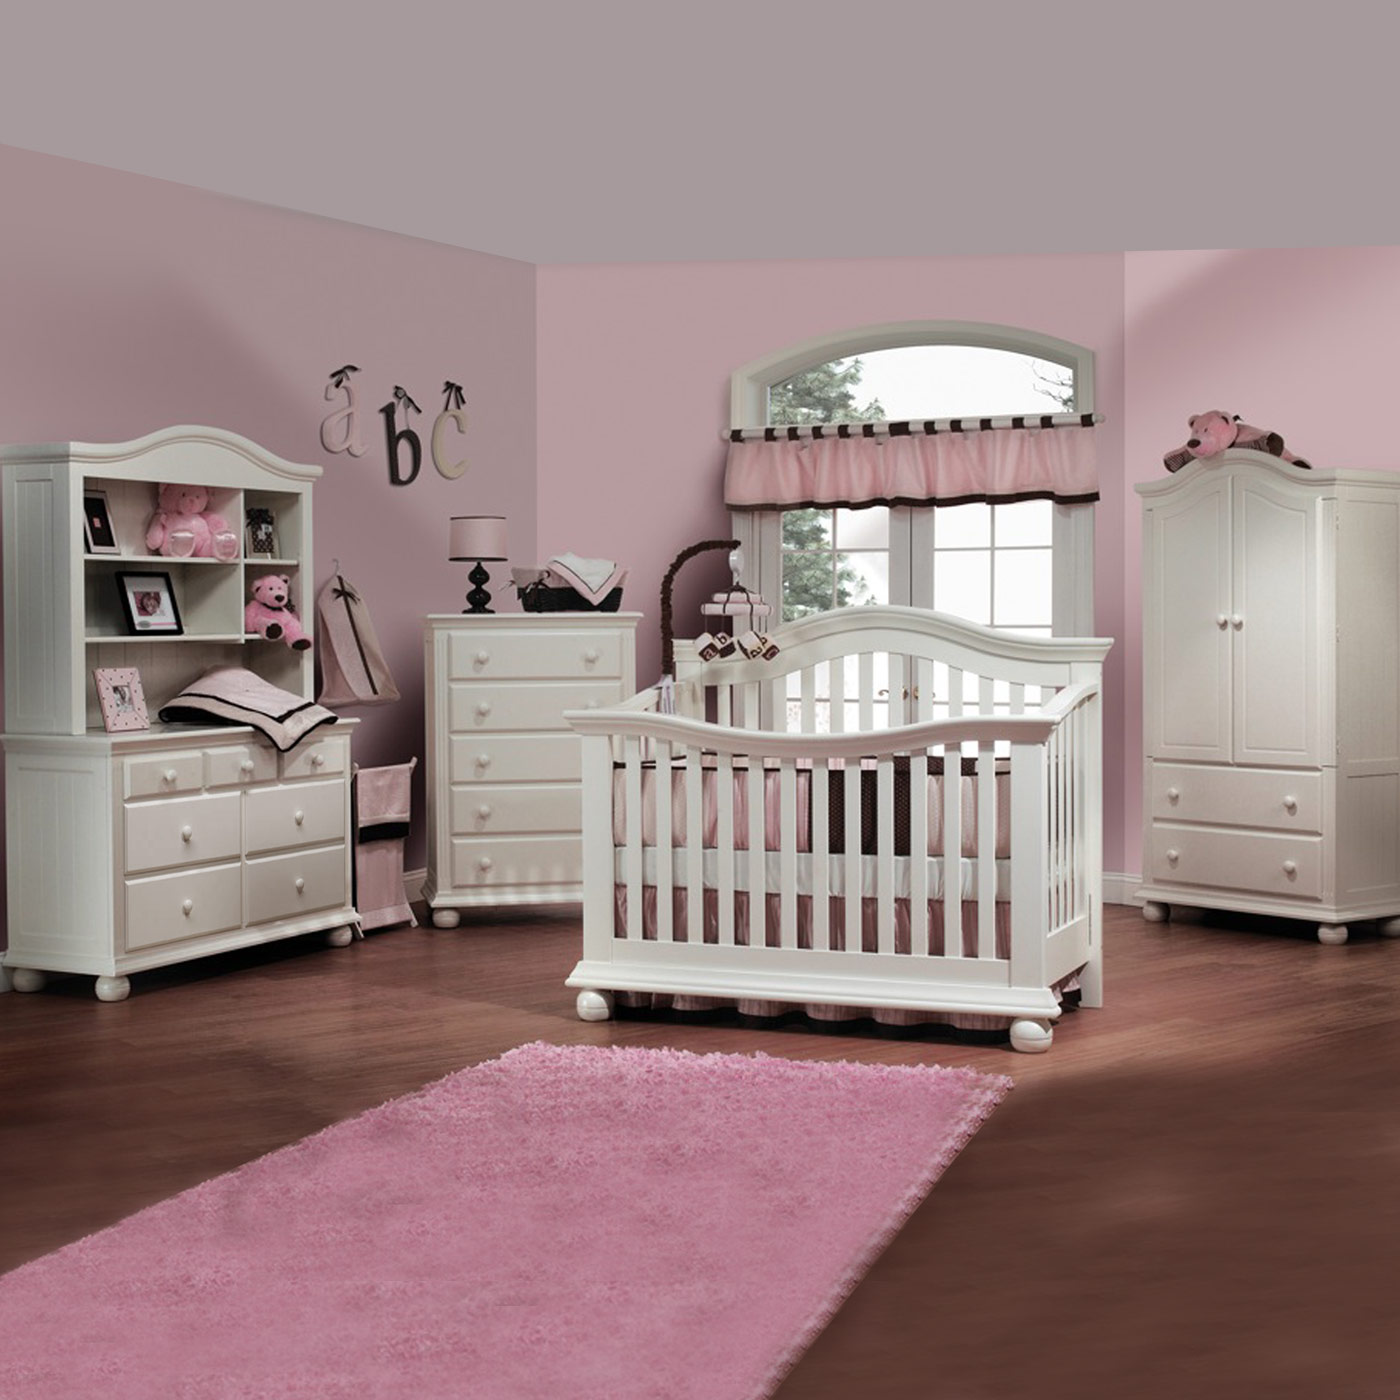 Sorelle Vista 5 Piece Nursery Set Couture Convertible Crib Double Dresser Hutch Drawer And Armoire In French White Free Shipping